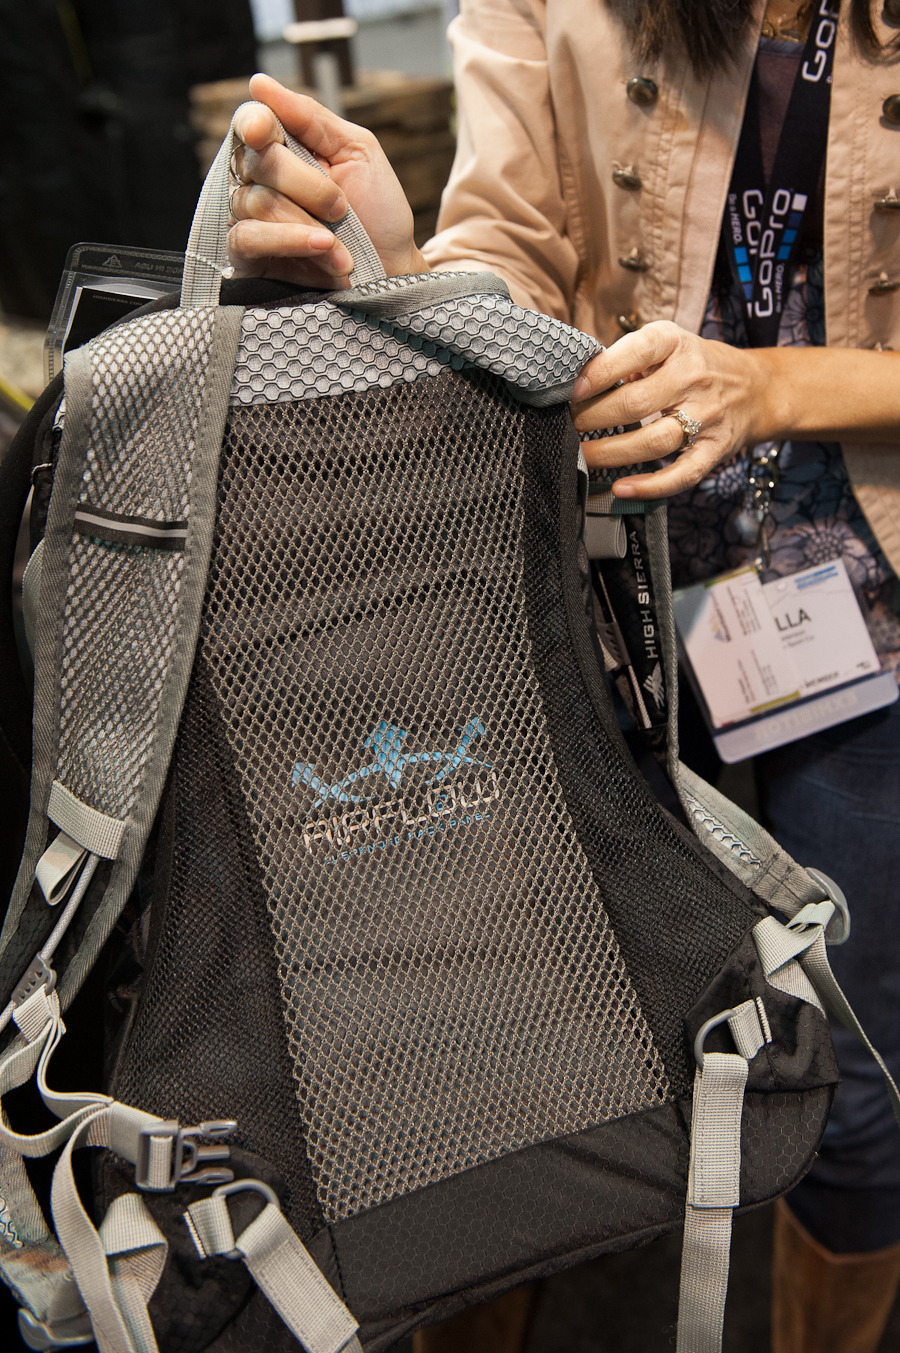 The High Sierra Marlin 18 L airflow suspended back panel technology keeps this hydration pack off of your back.